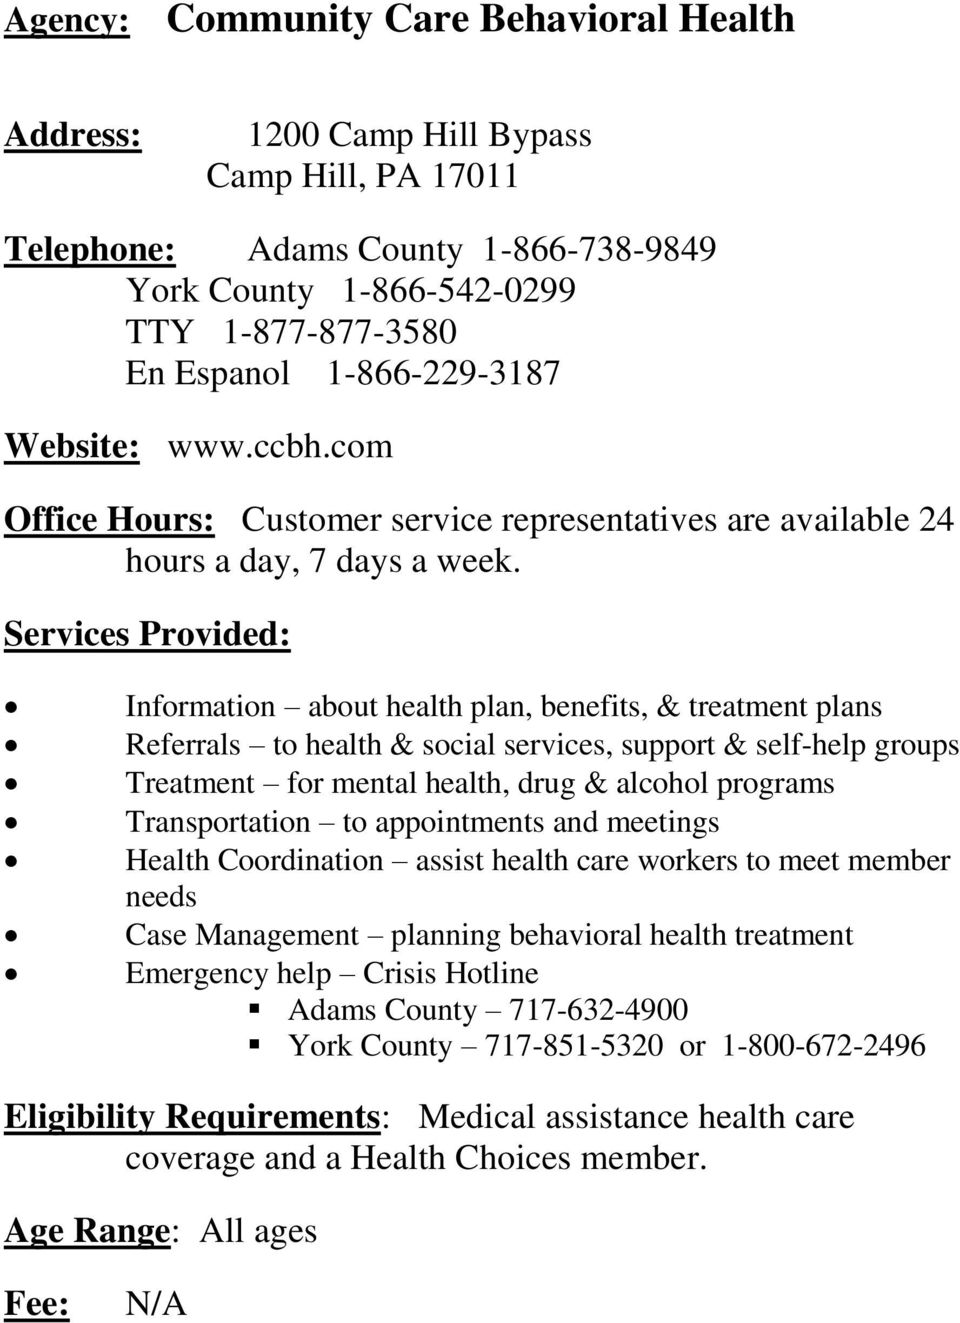 Services Provided: Information about health plan, benefits, & treatment plans Referrals to health & social services, support & self-help groups Treatment for mental health, drug & alcohol programs